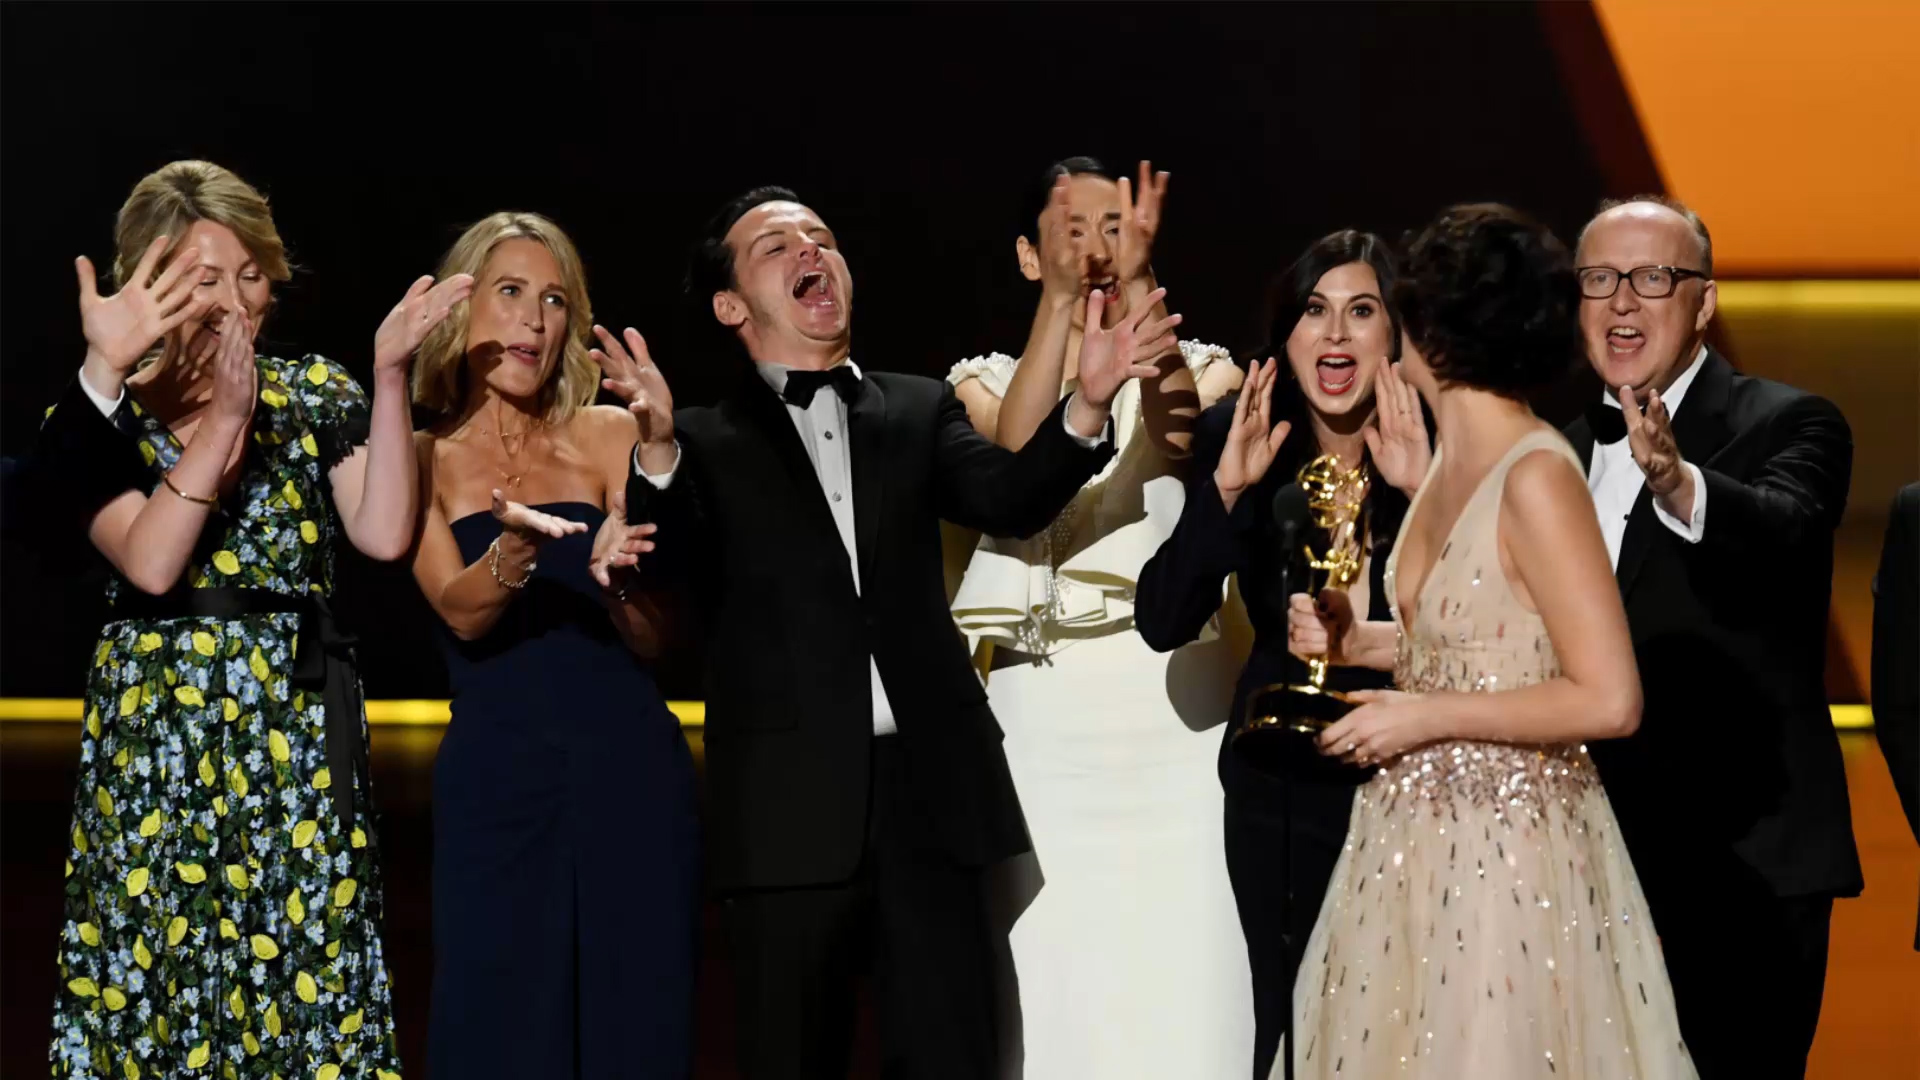 'Fleabag' wins Outstanding Comedy Series at 2019 Emmy Awards